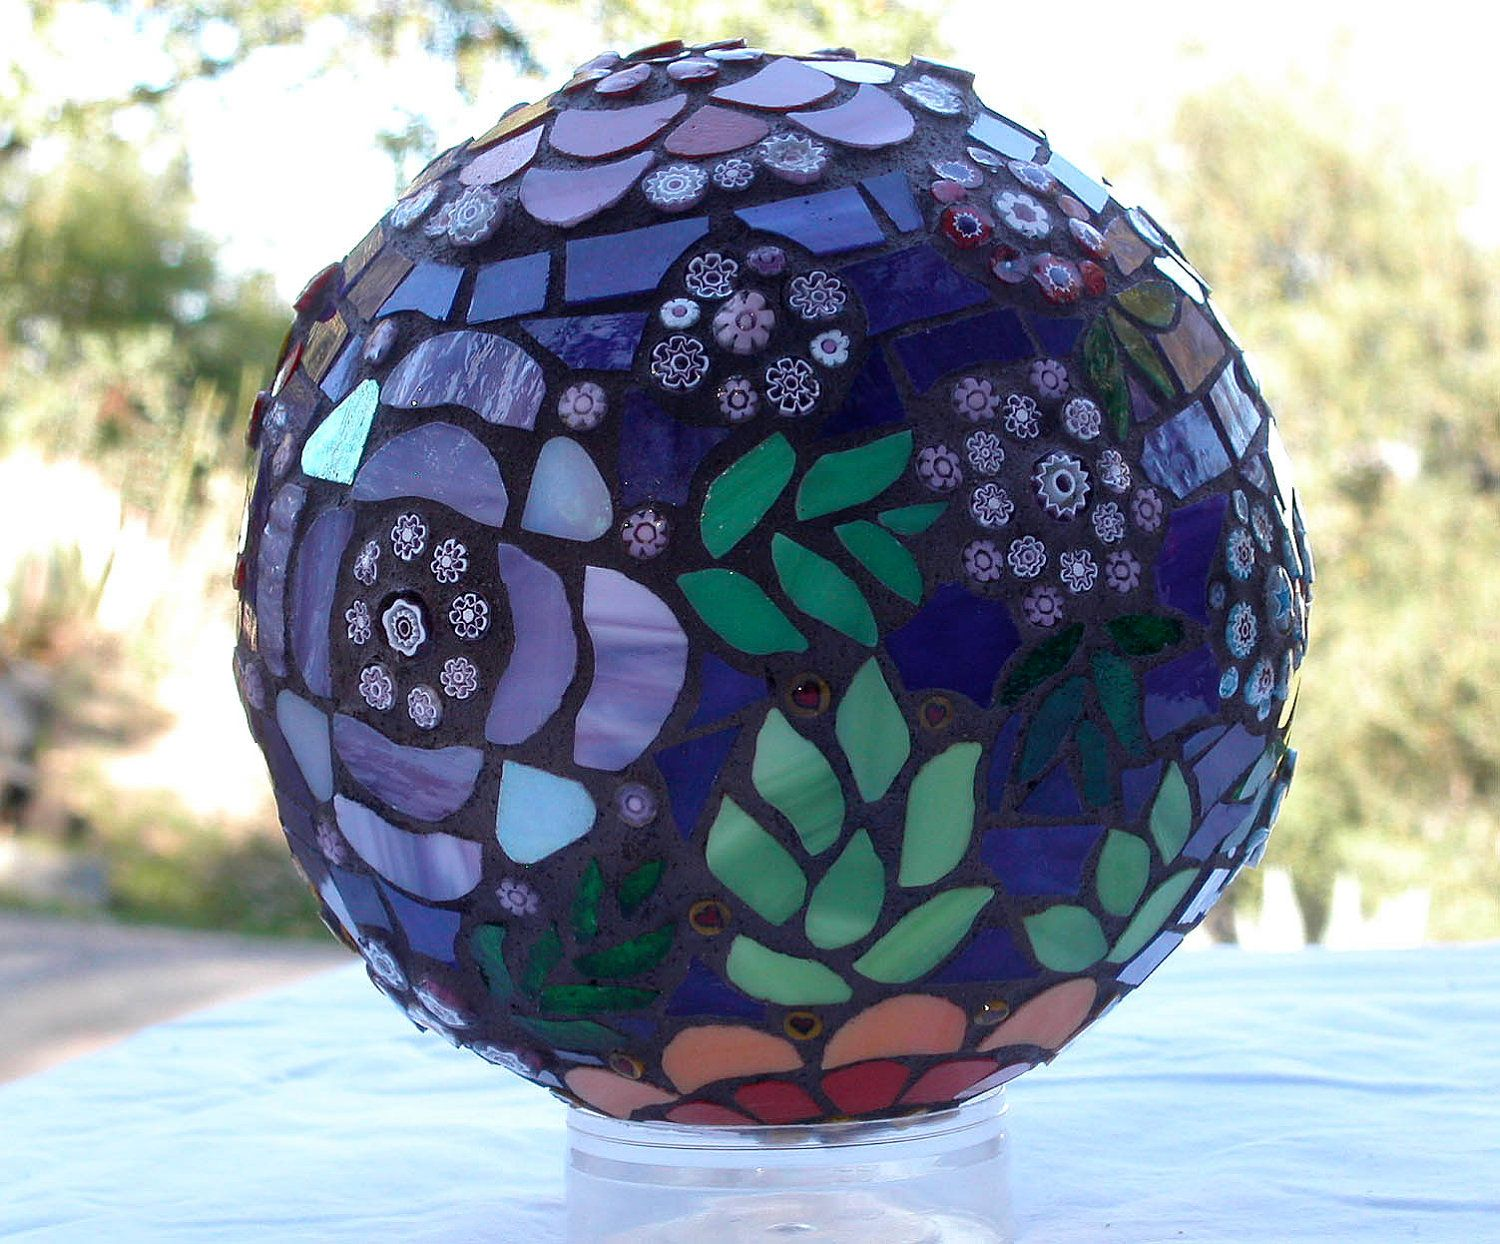 whimsical floral mosaic decorative globe, one of a kind stained